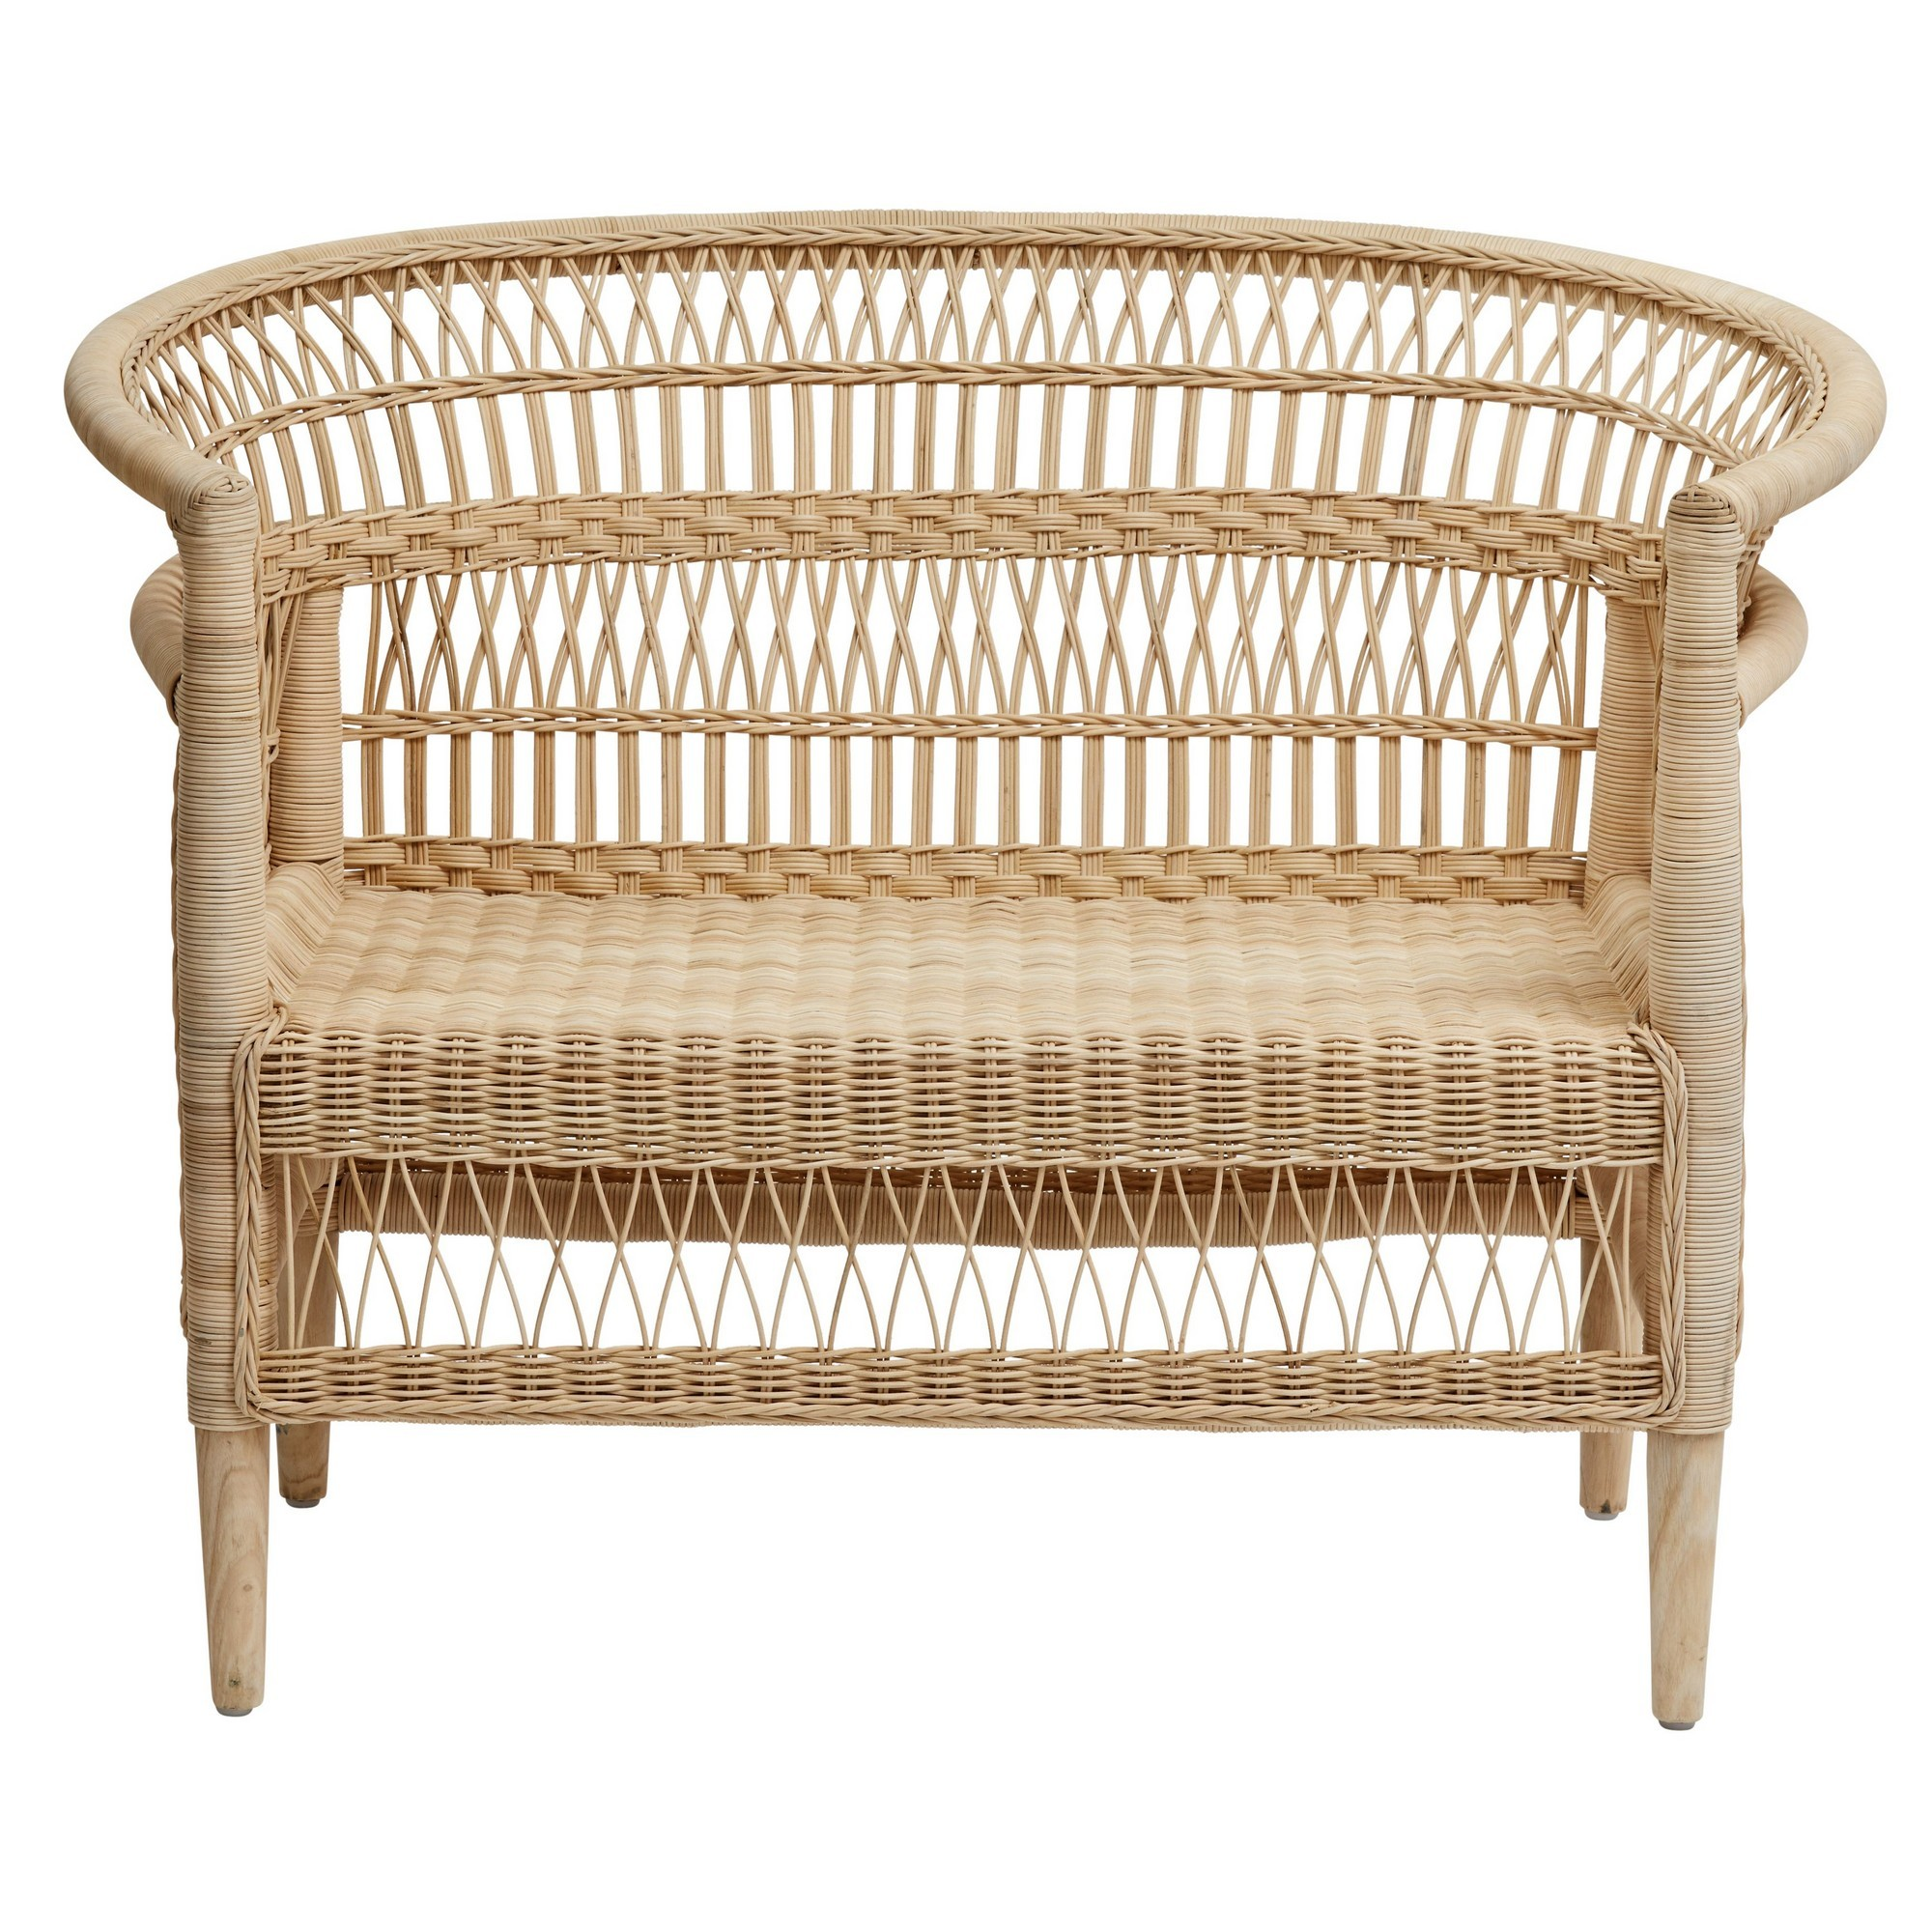 Indah Rattan Love Chair